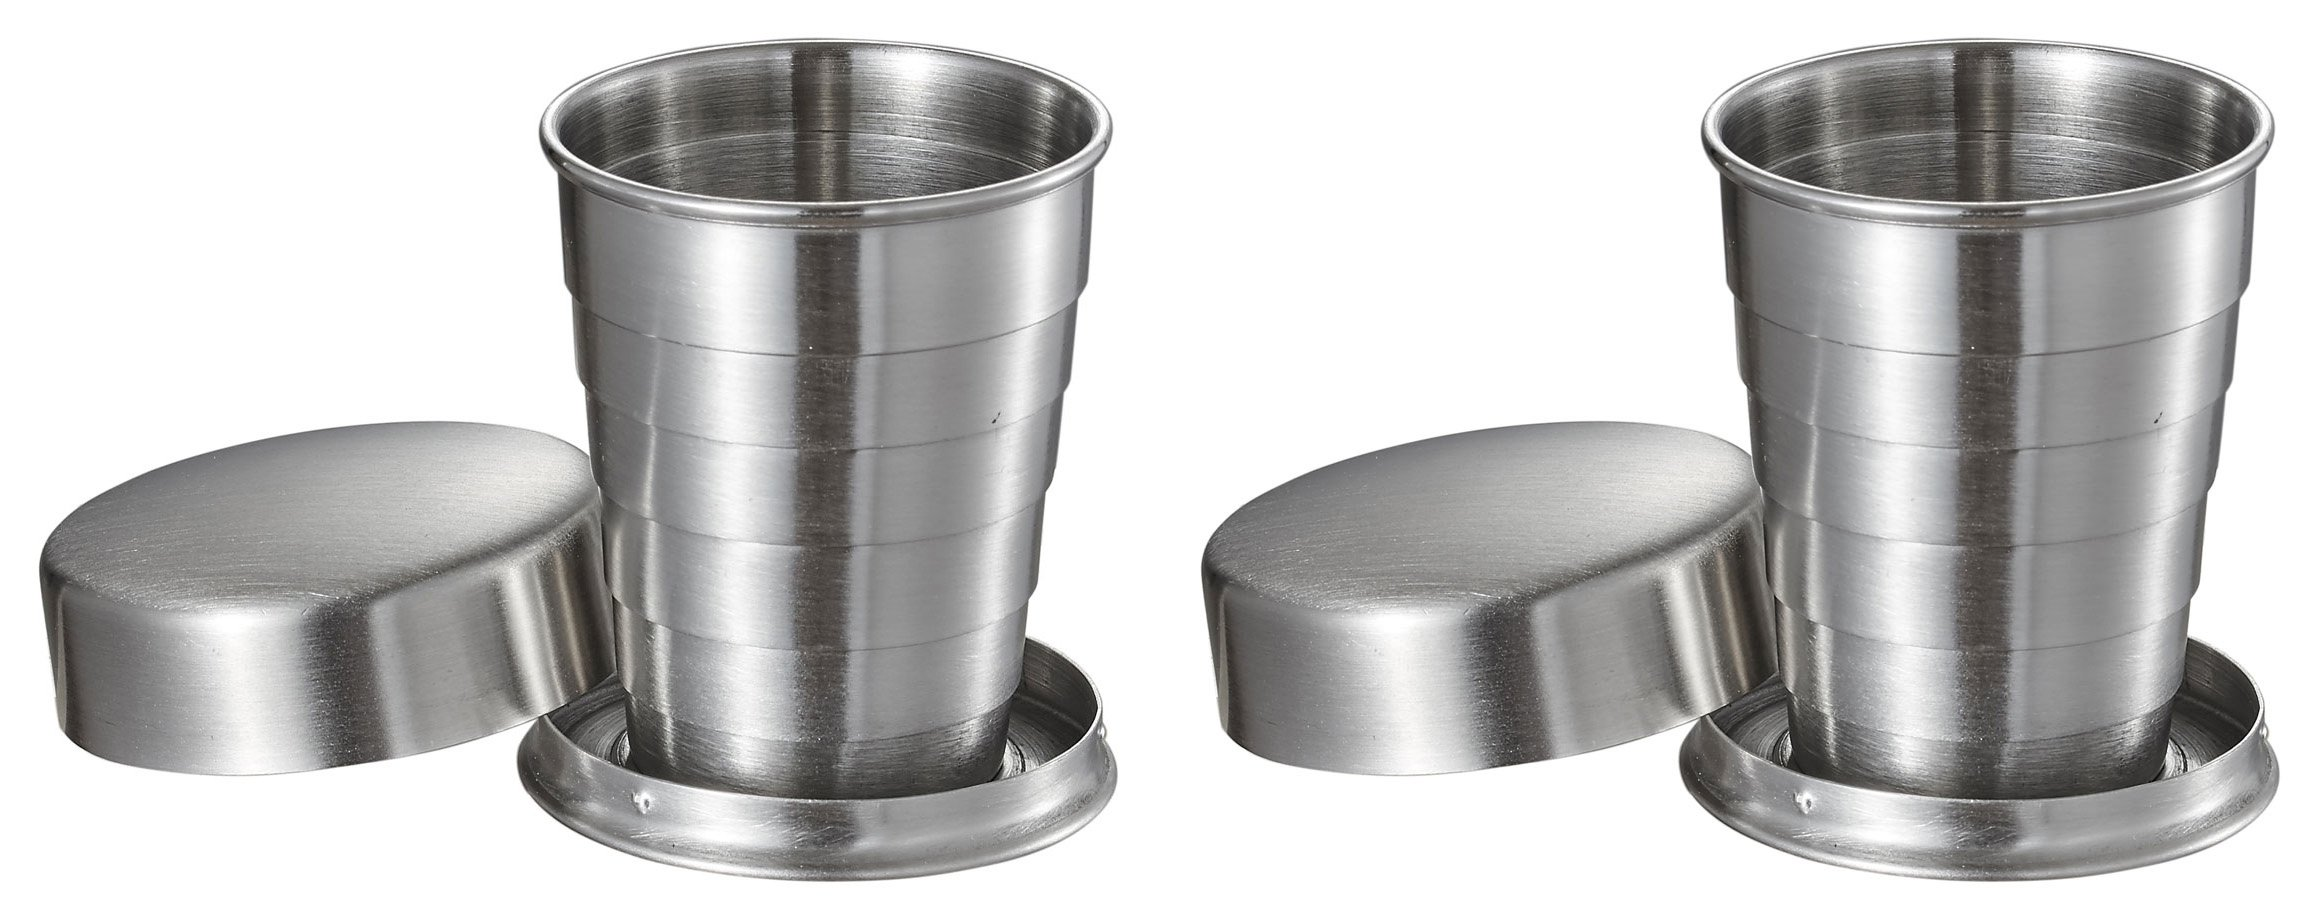 Visol Scope Stainless Steel Folding Shot Cup (2 Pack), 2 oz, Silver